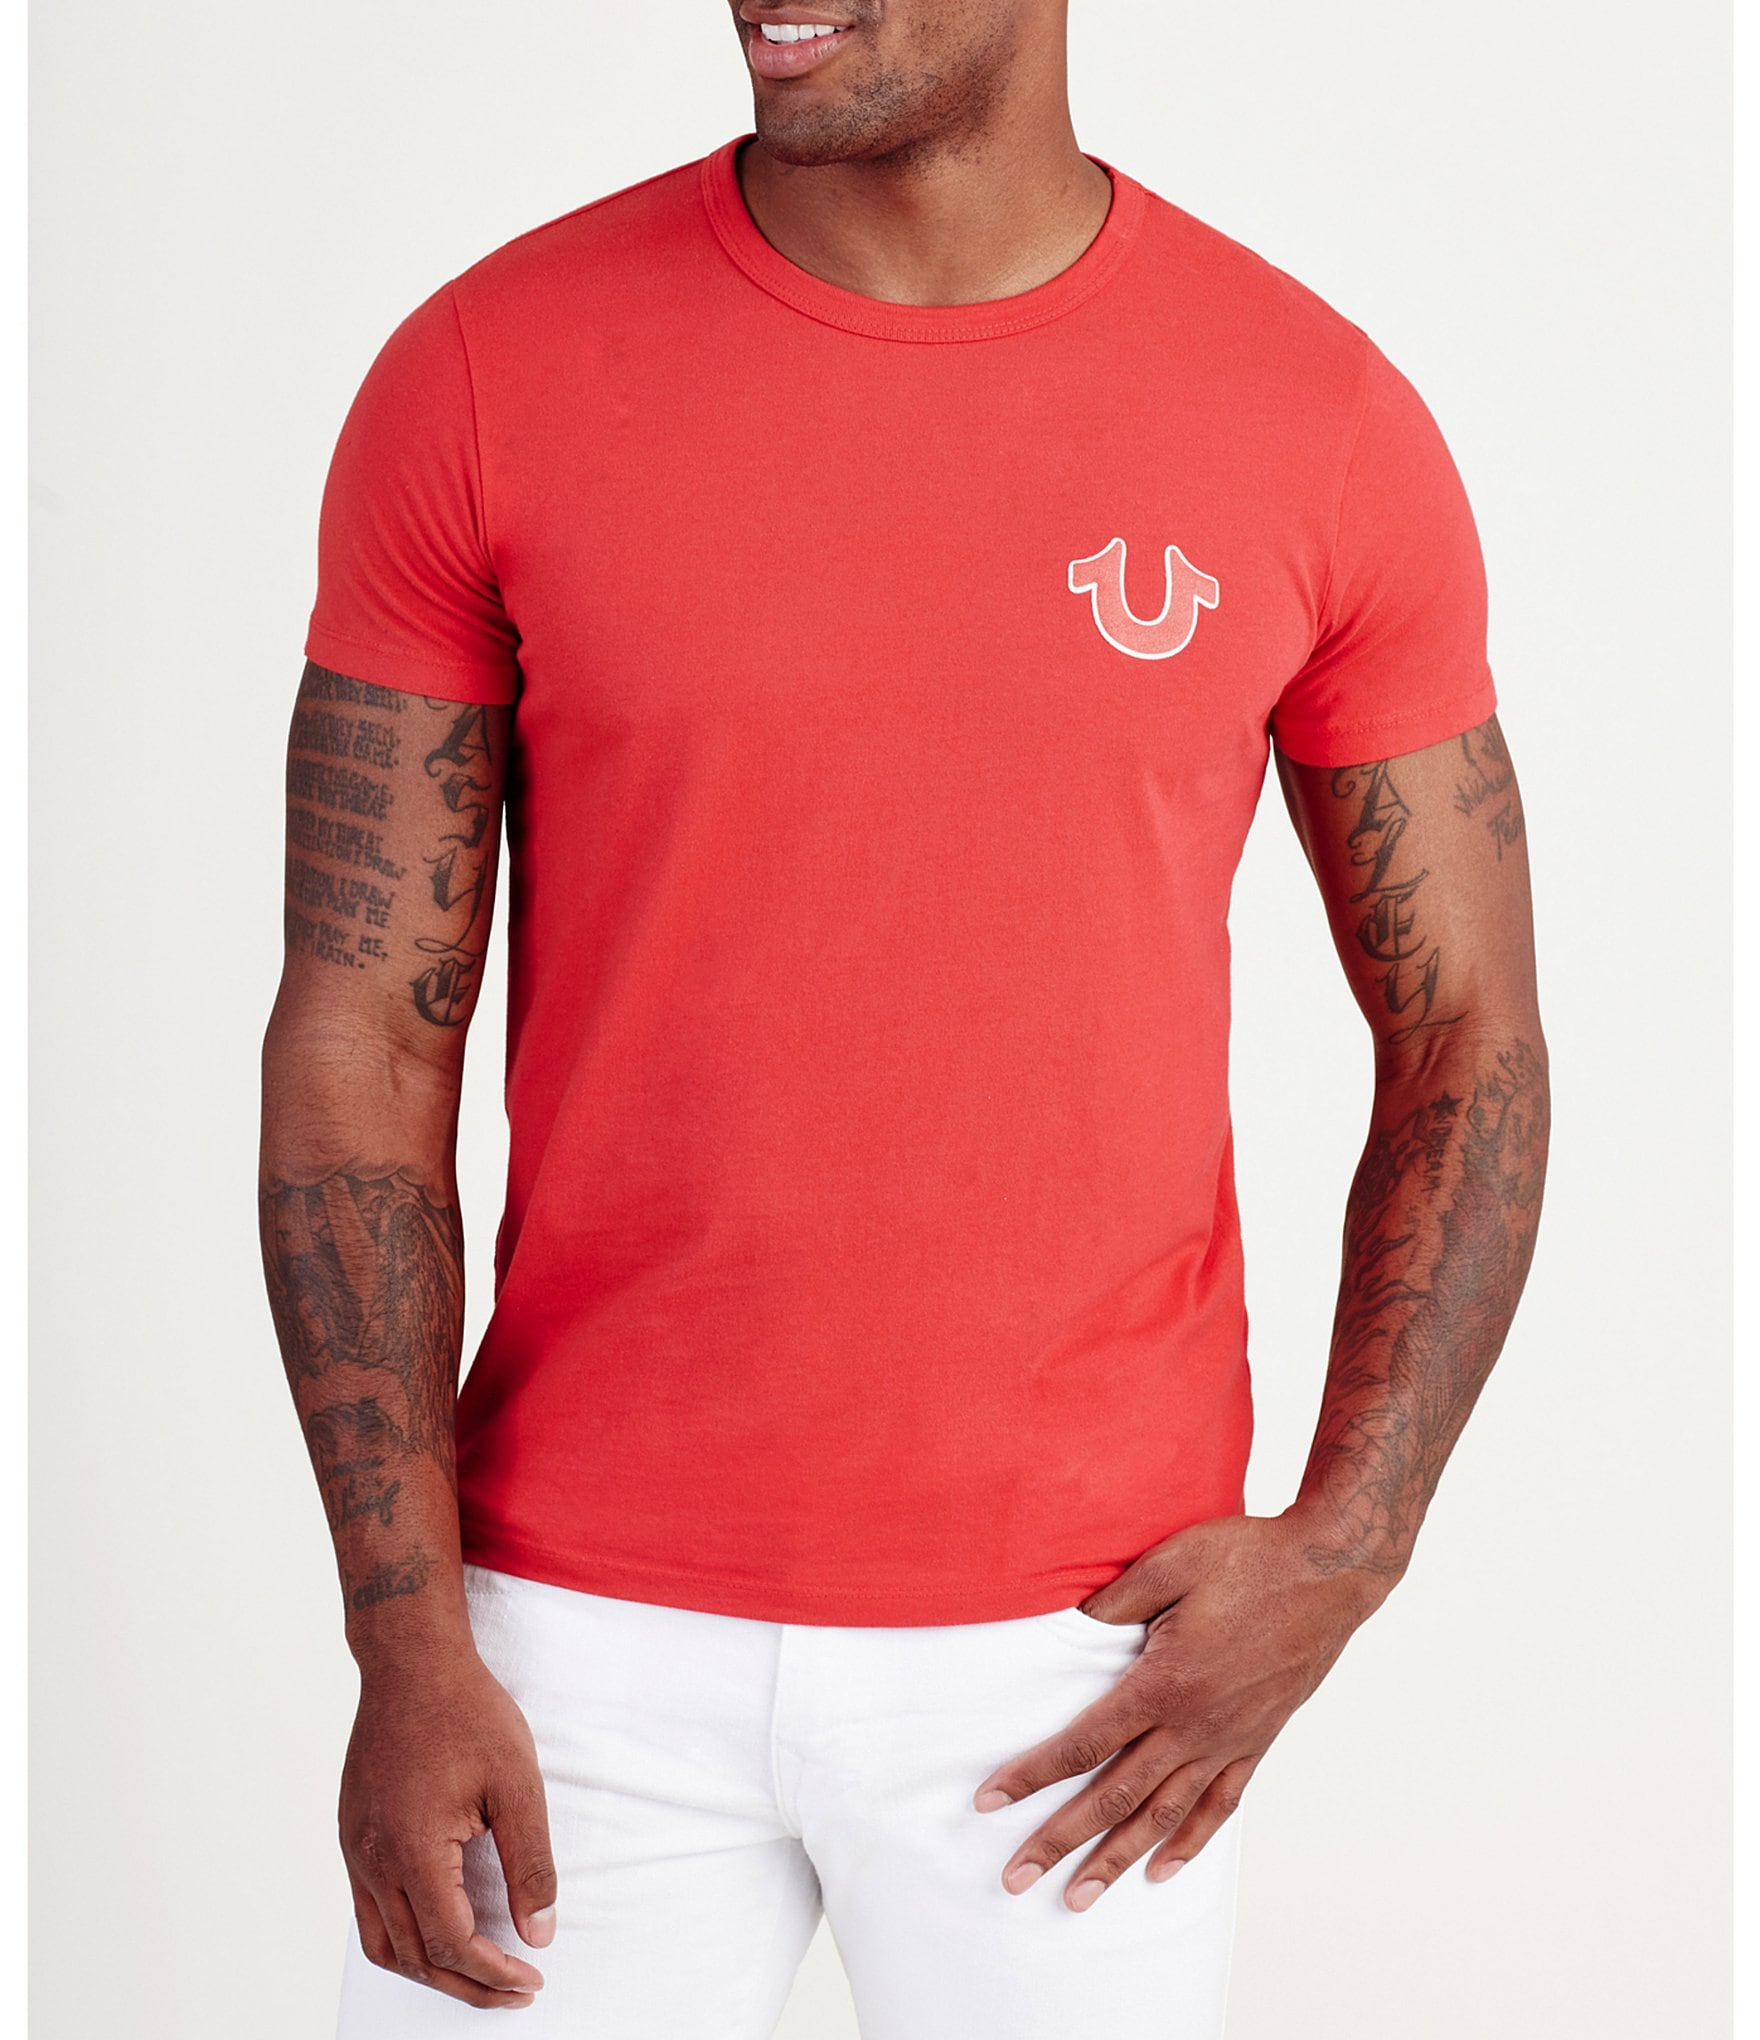 c1eb38e9 True Religion Men's Clothing & Apparel | Dillard's